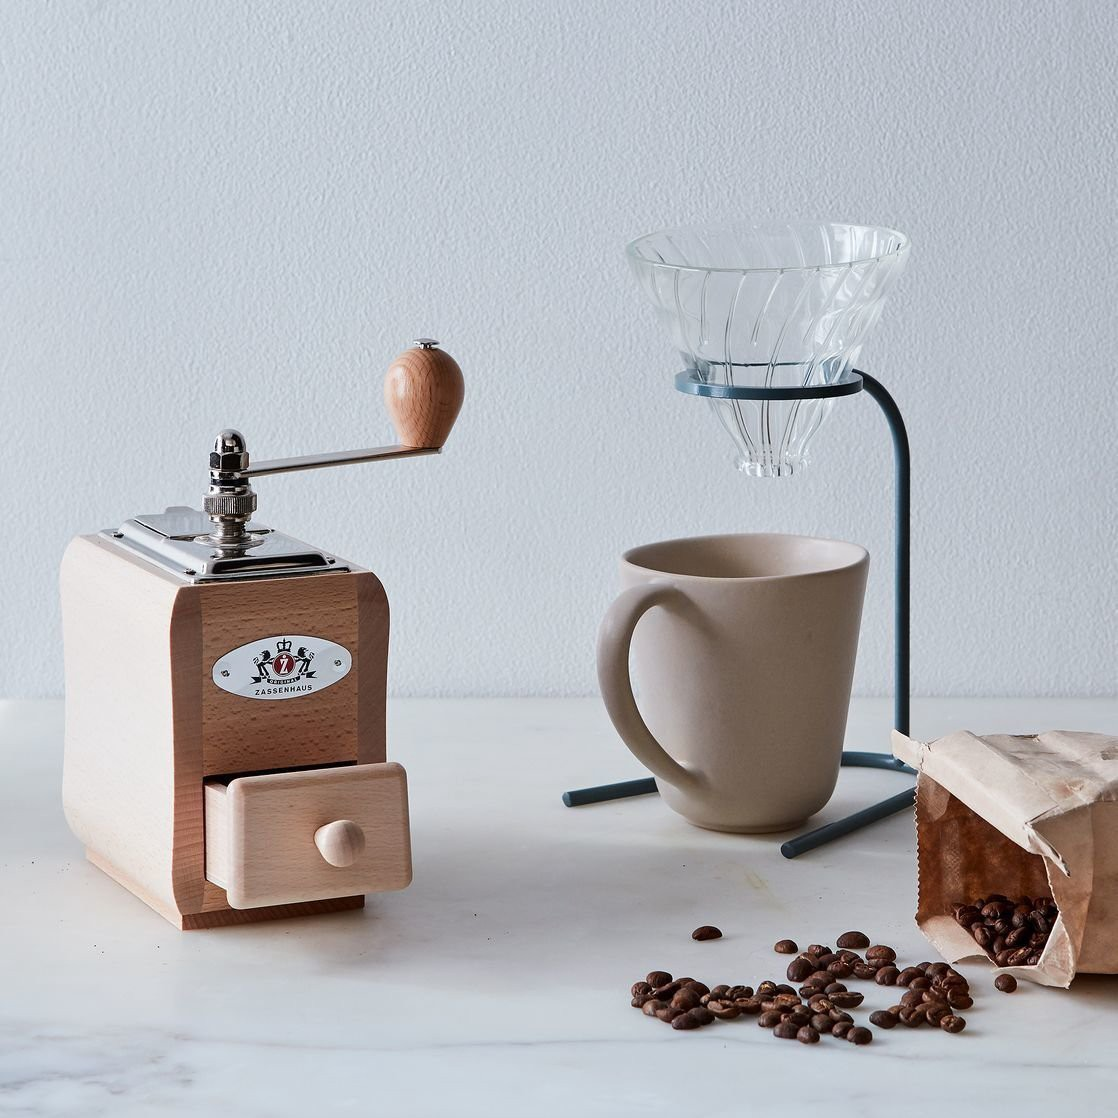 Minimalist Coffee Pour-Over Stand